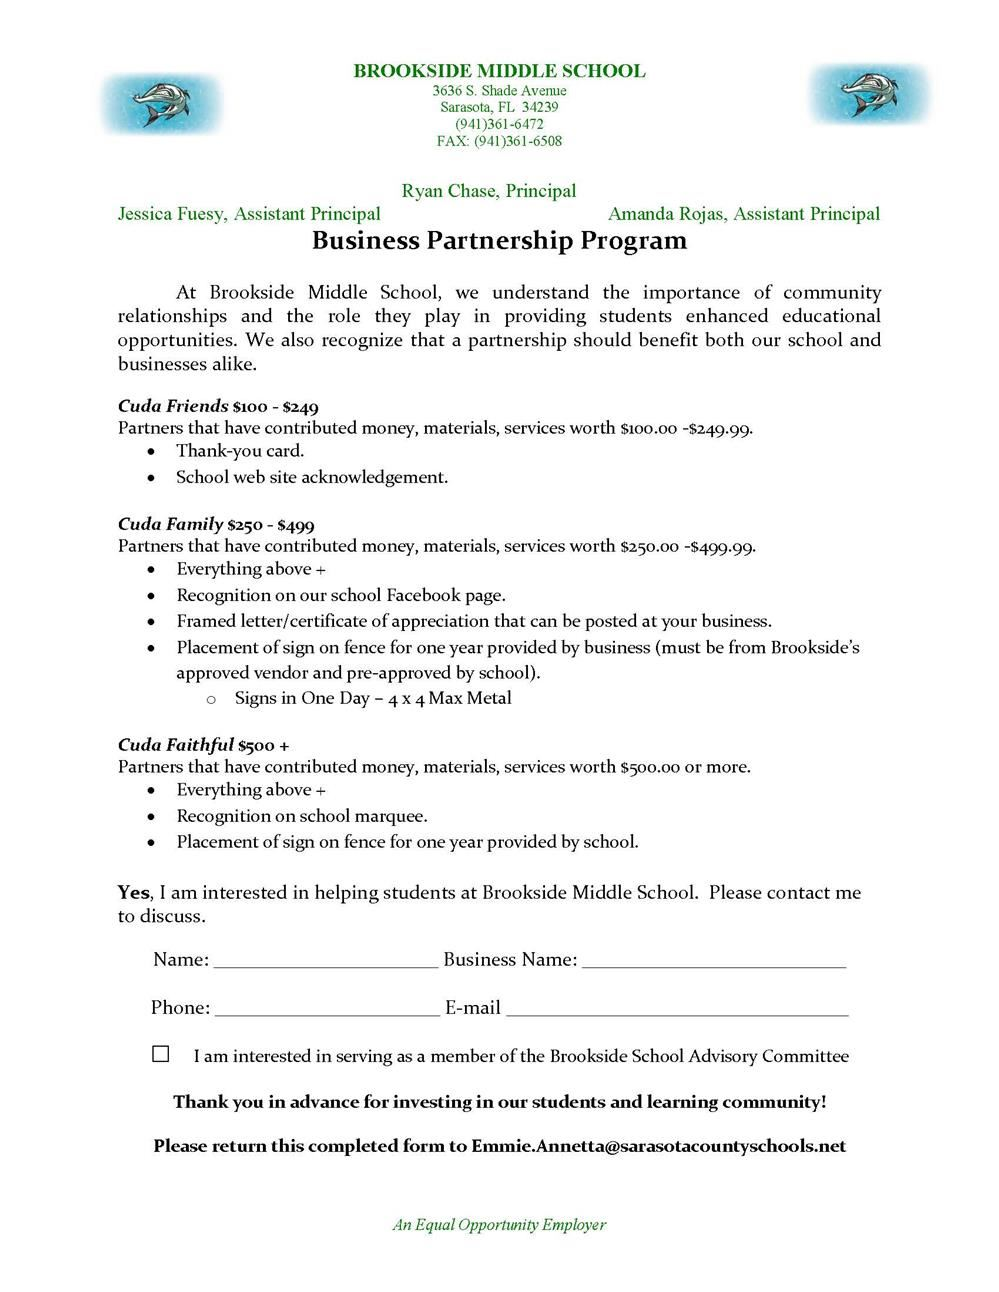 Brookside Business Partnership Program